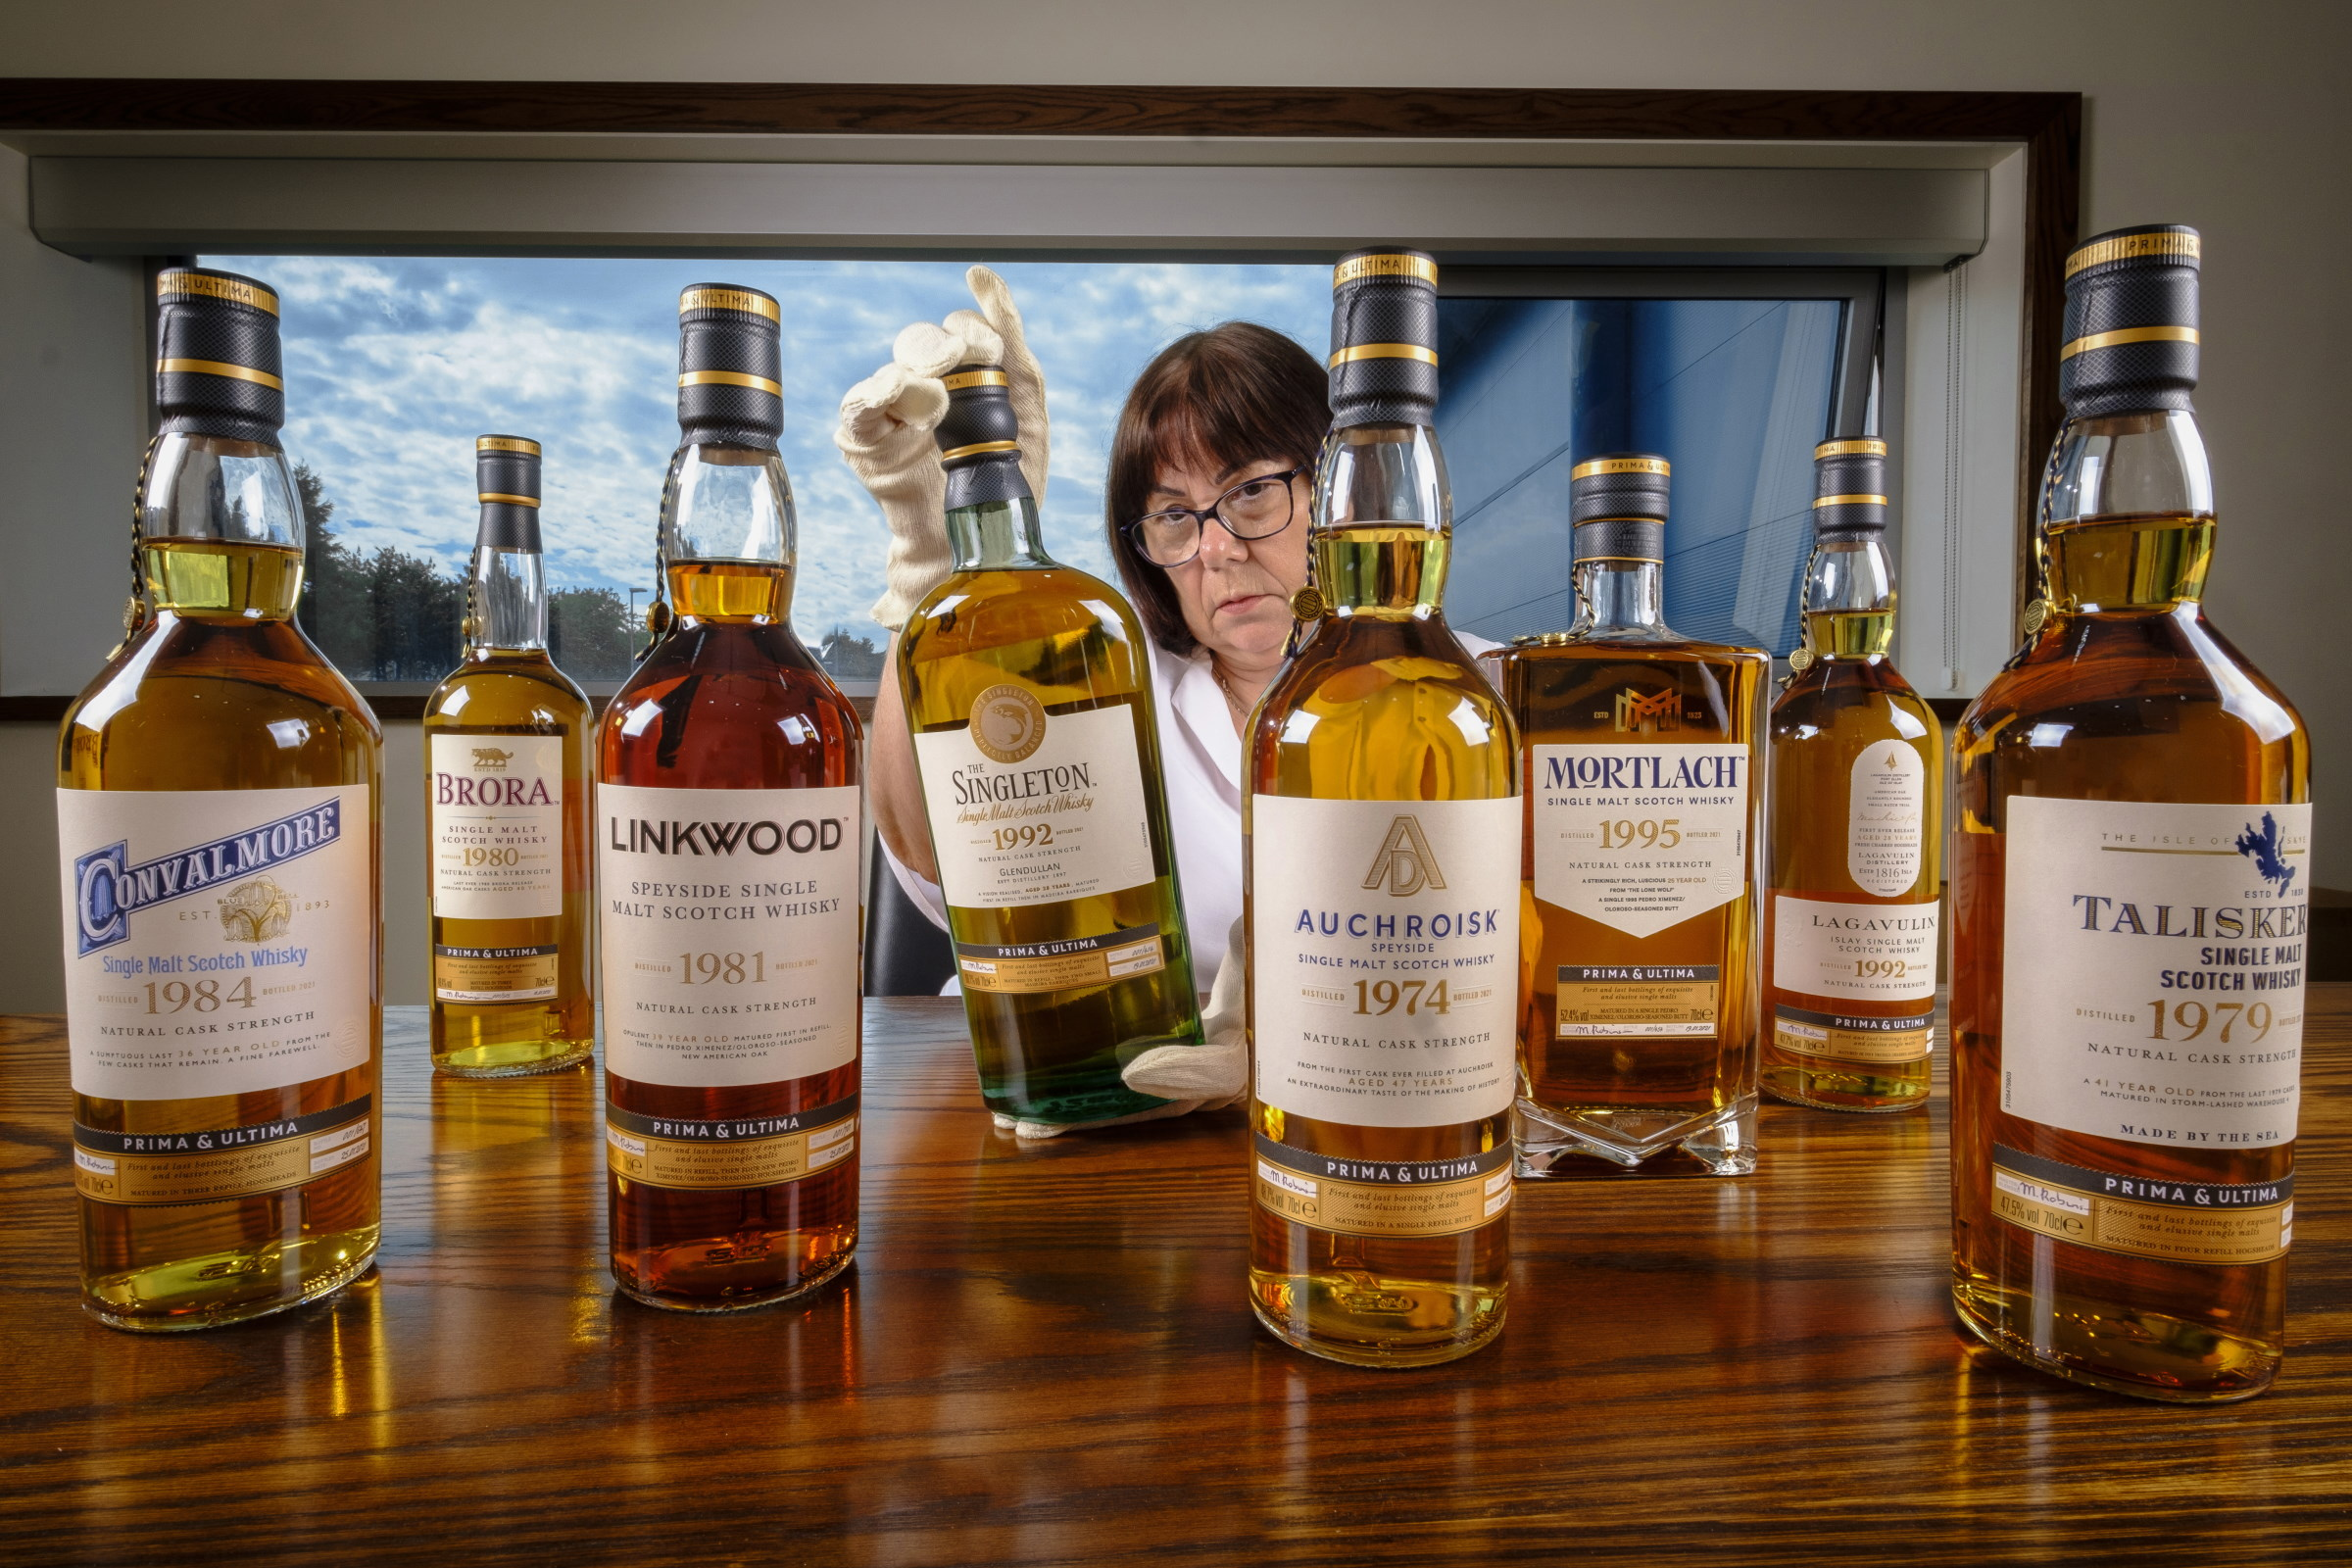 Diageo Master Blender Maureen Robinson Discusses Whisky And The Prima & Ultima Collection